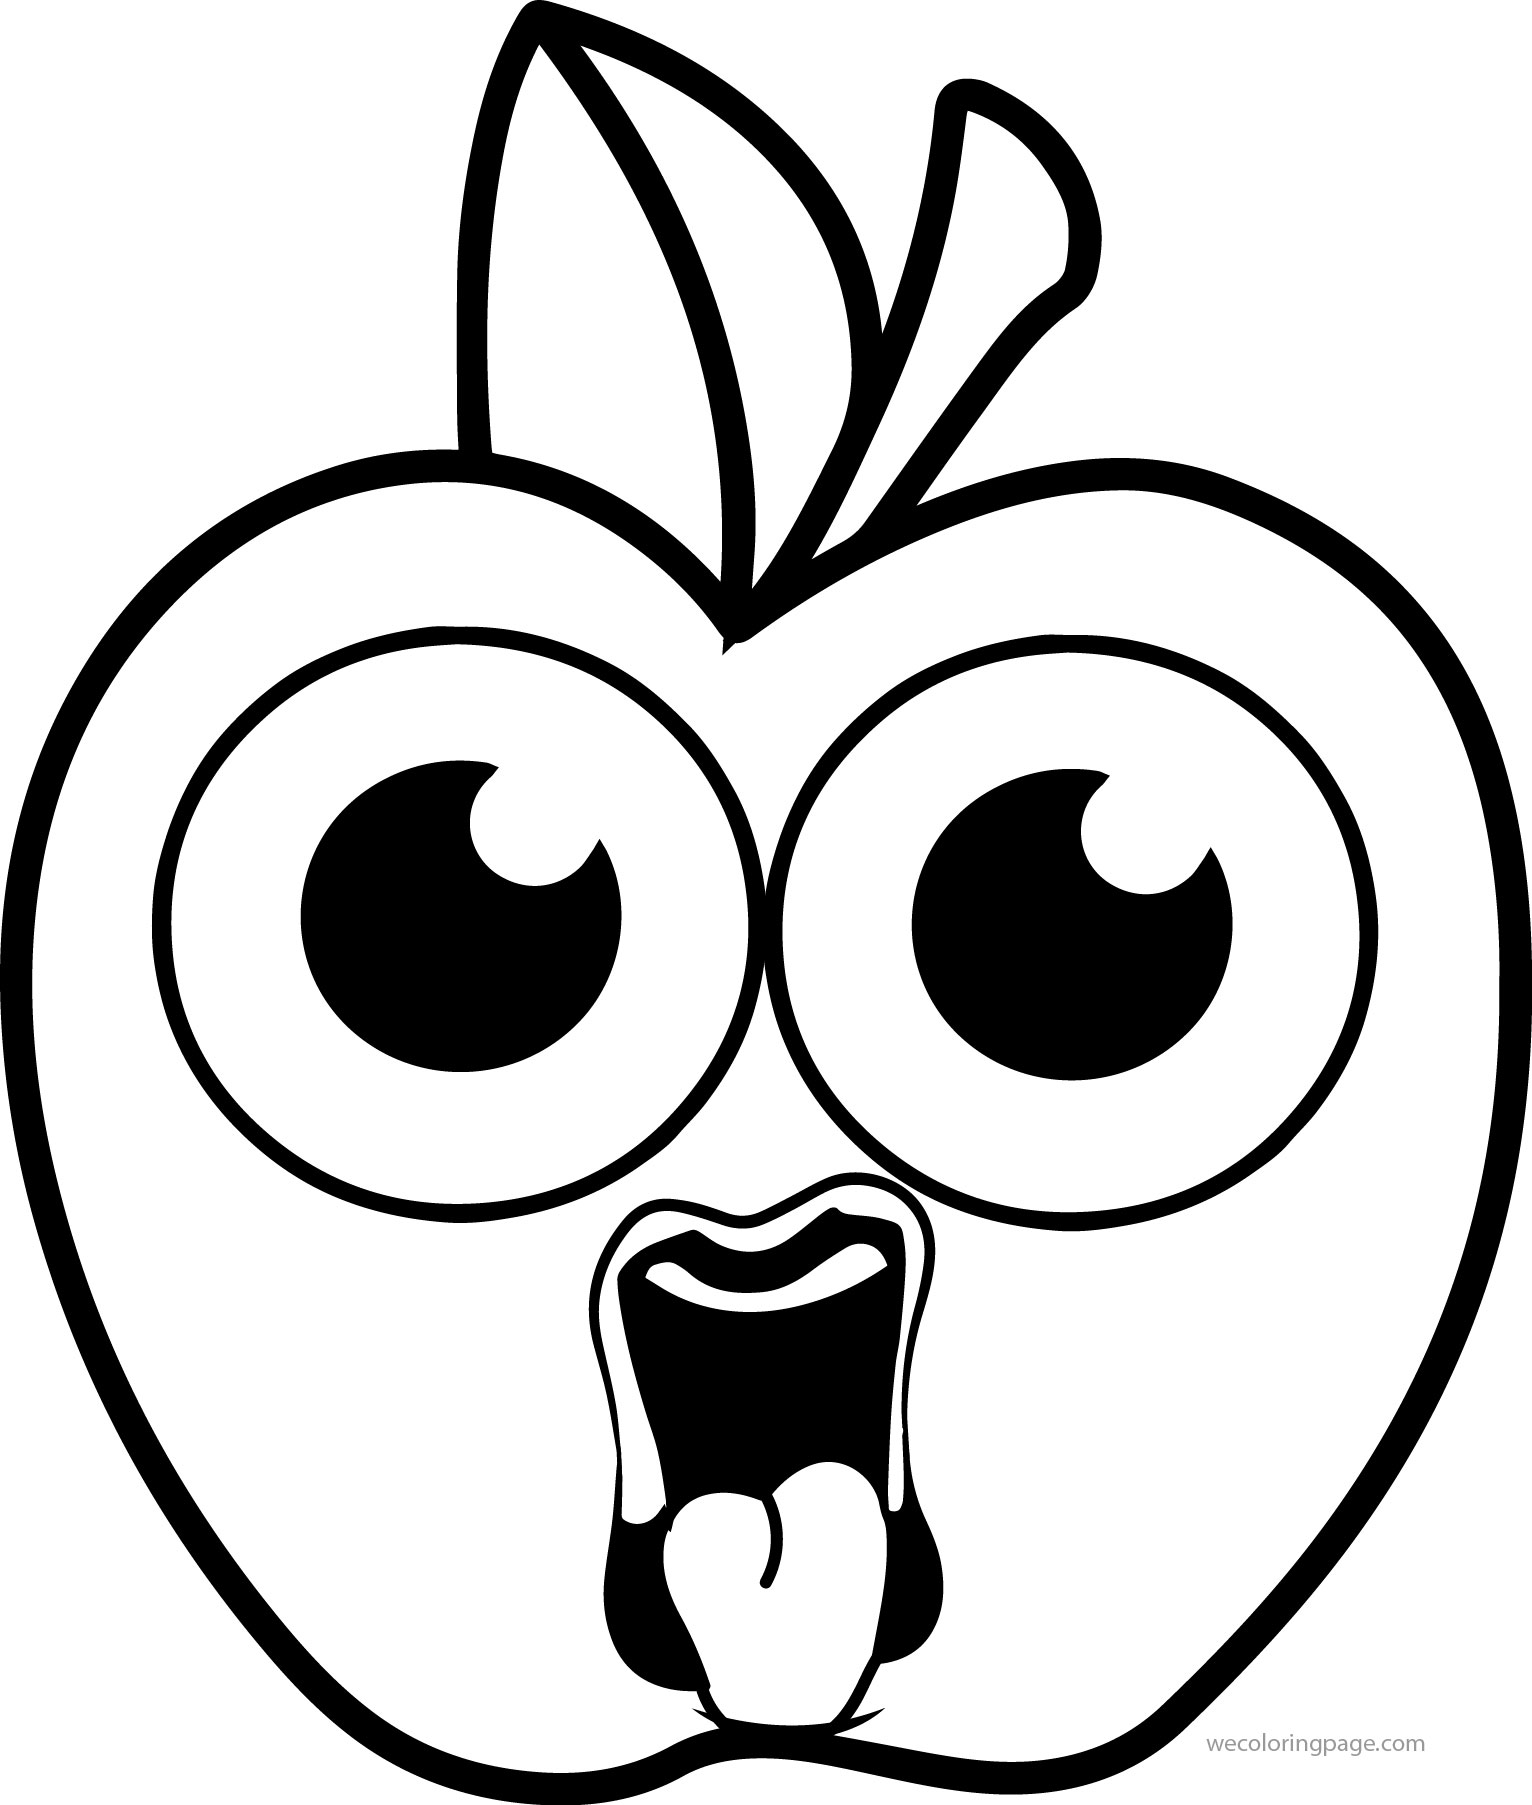 1532x1805 Girl Cartoon Apple Ugly Coloring Pages Wecoloringpage